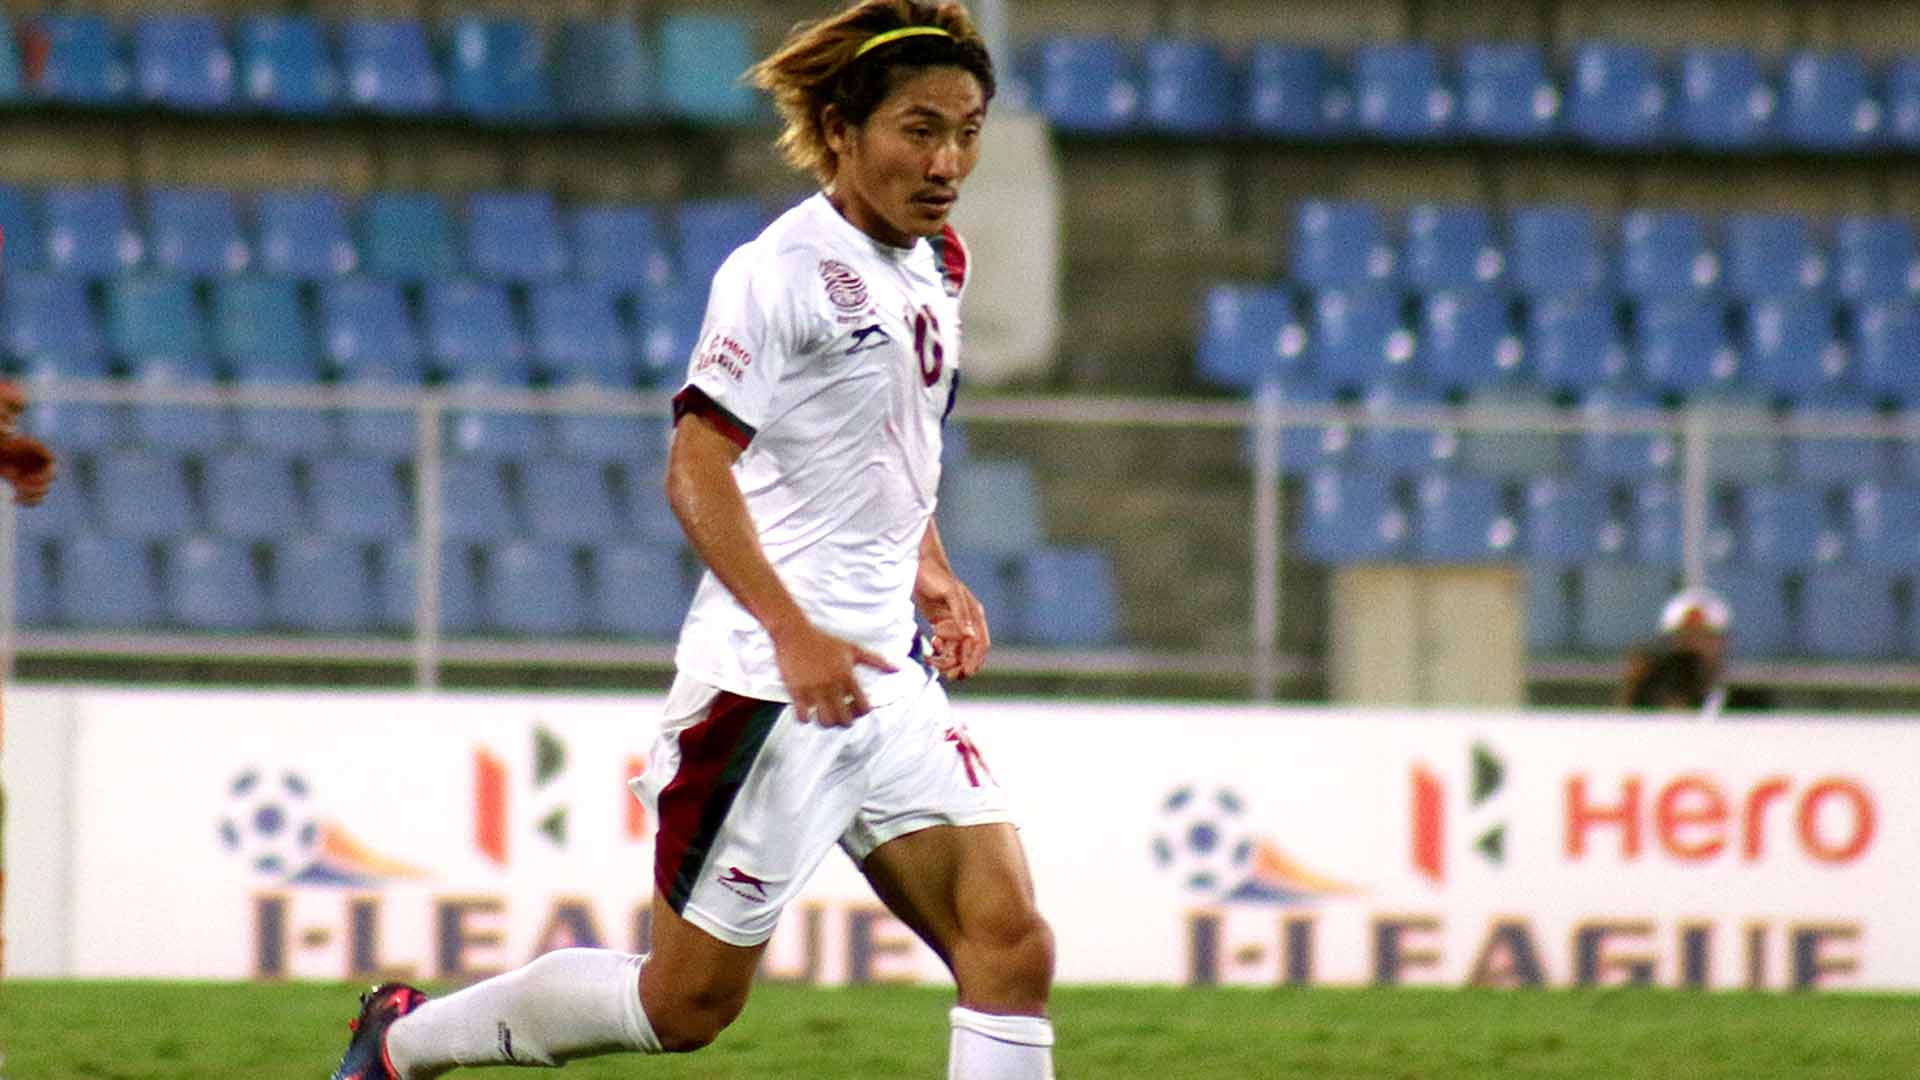 Pritam Kotal: Mohun Bagan is in contention to win the I